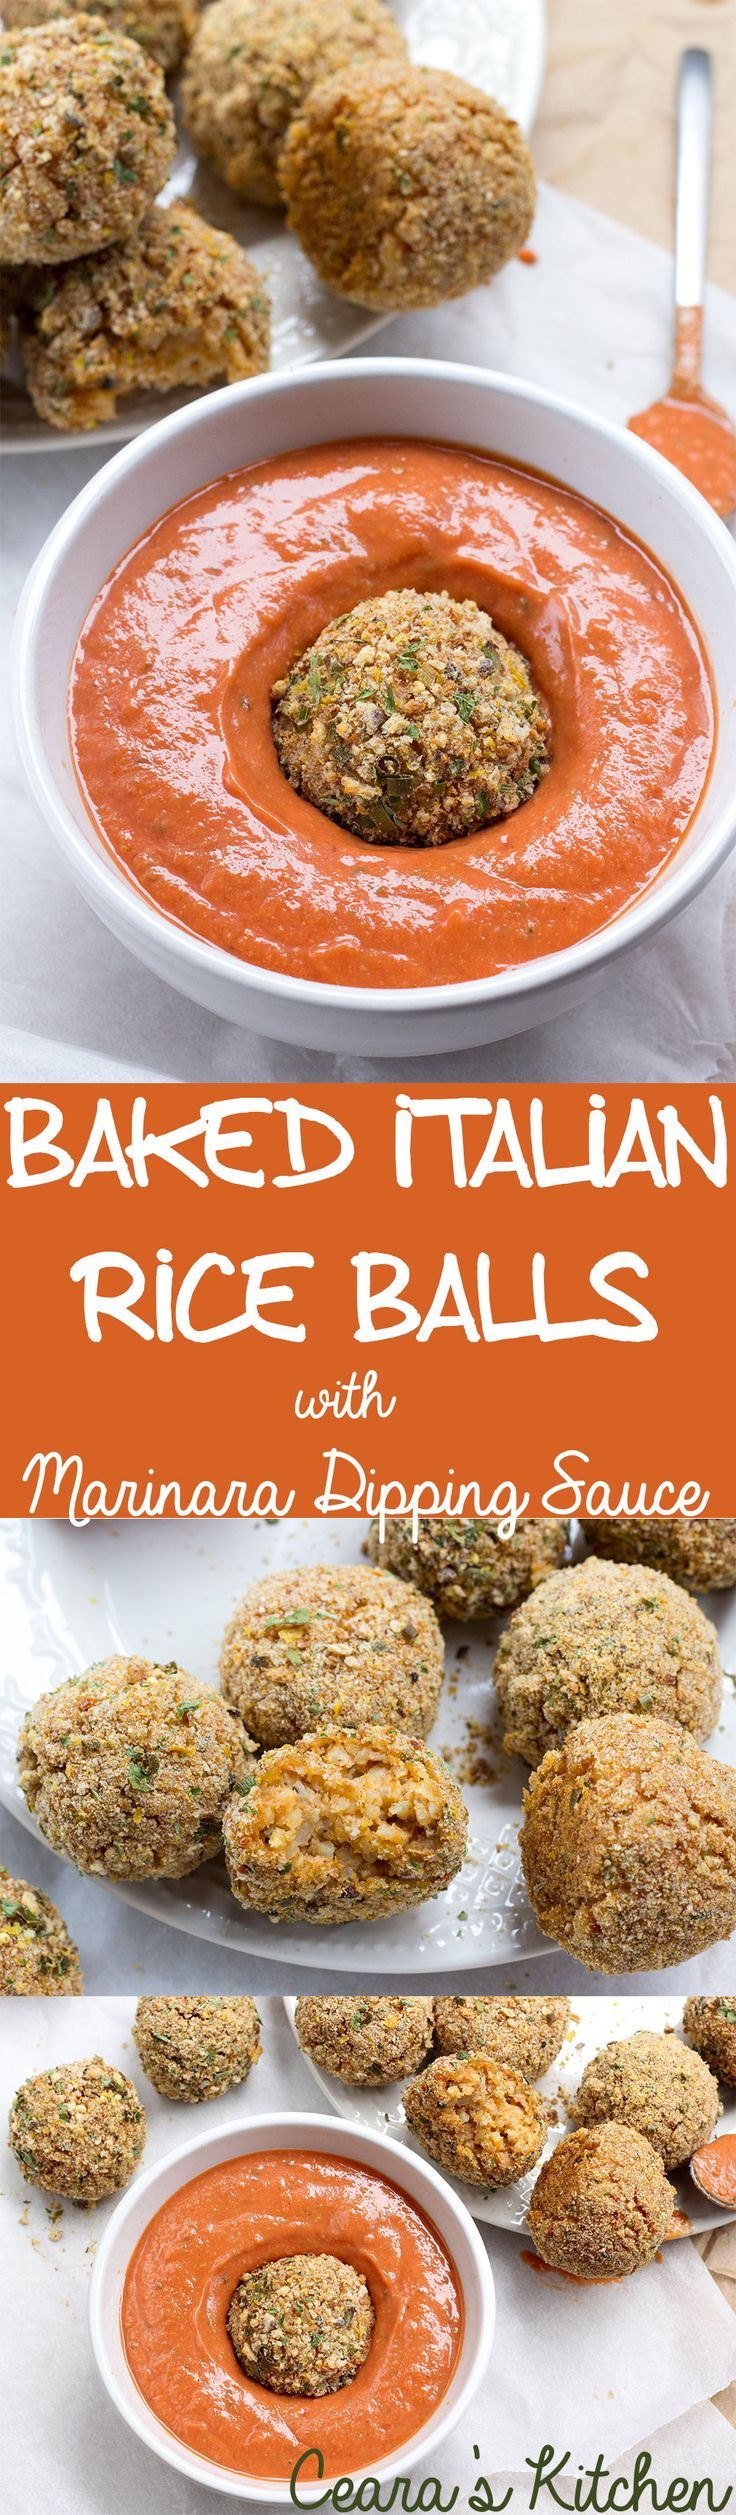 Baked Italian Rice Balls (Arancini) with Creamy Marinara Dipping Sauce - the perfect appetizer or side! Soft, cheesy & risotto-filled centered PLUS a crisp, herby + breaded exterior! #Saucesome